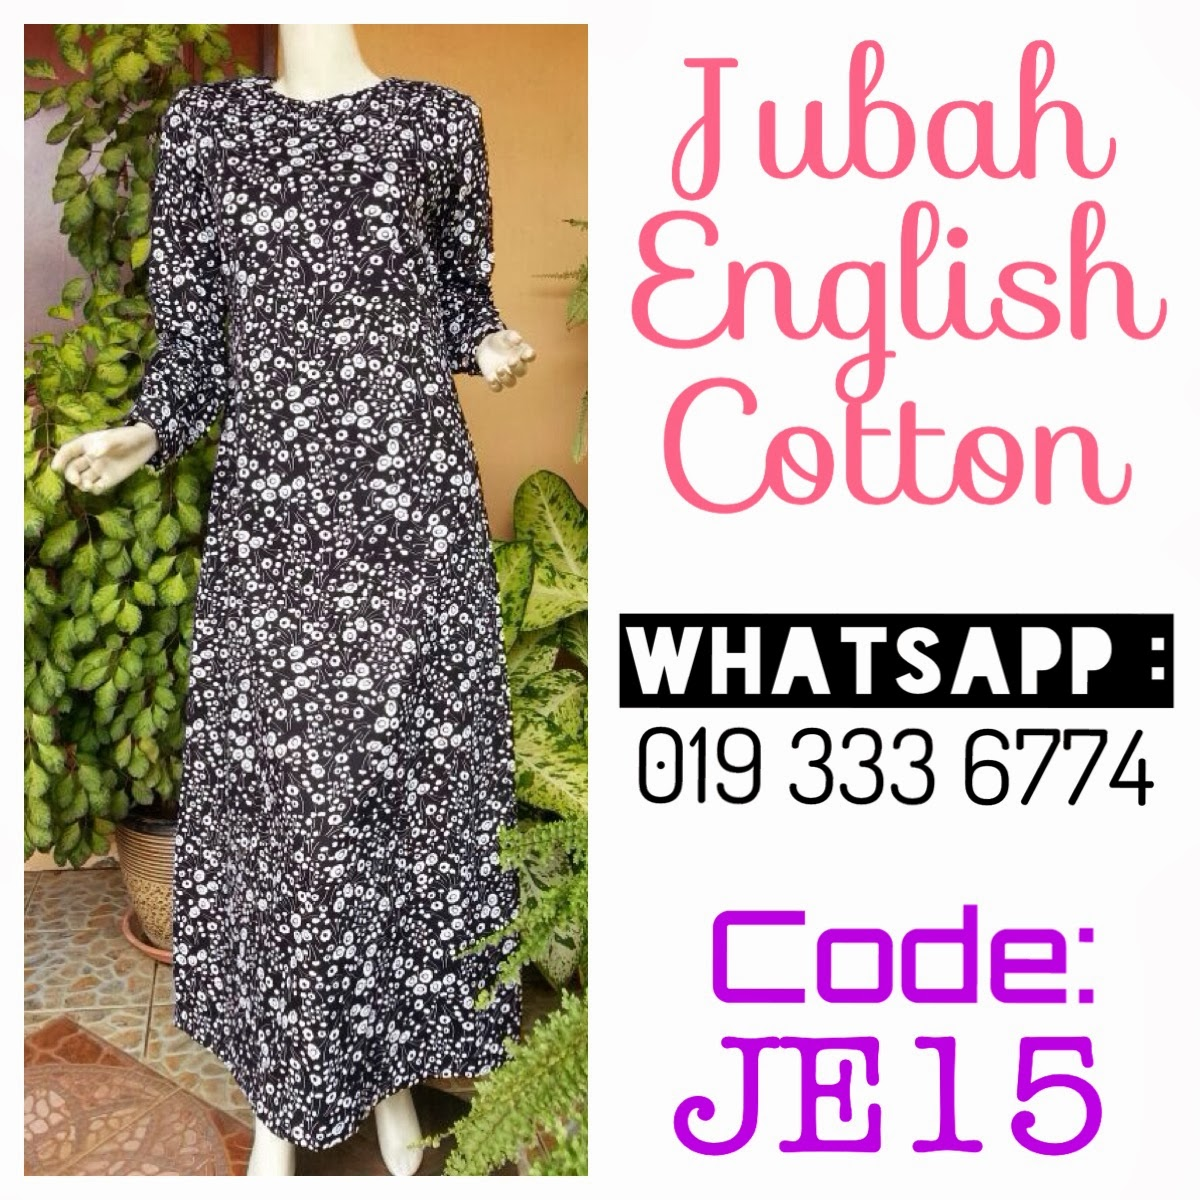 Kedai by nuarozie: JUBAH ENGLISH COTTON BATCH 2